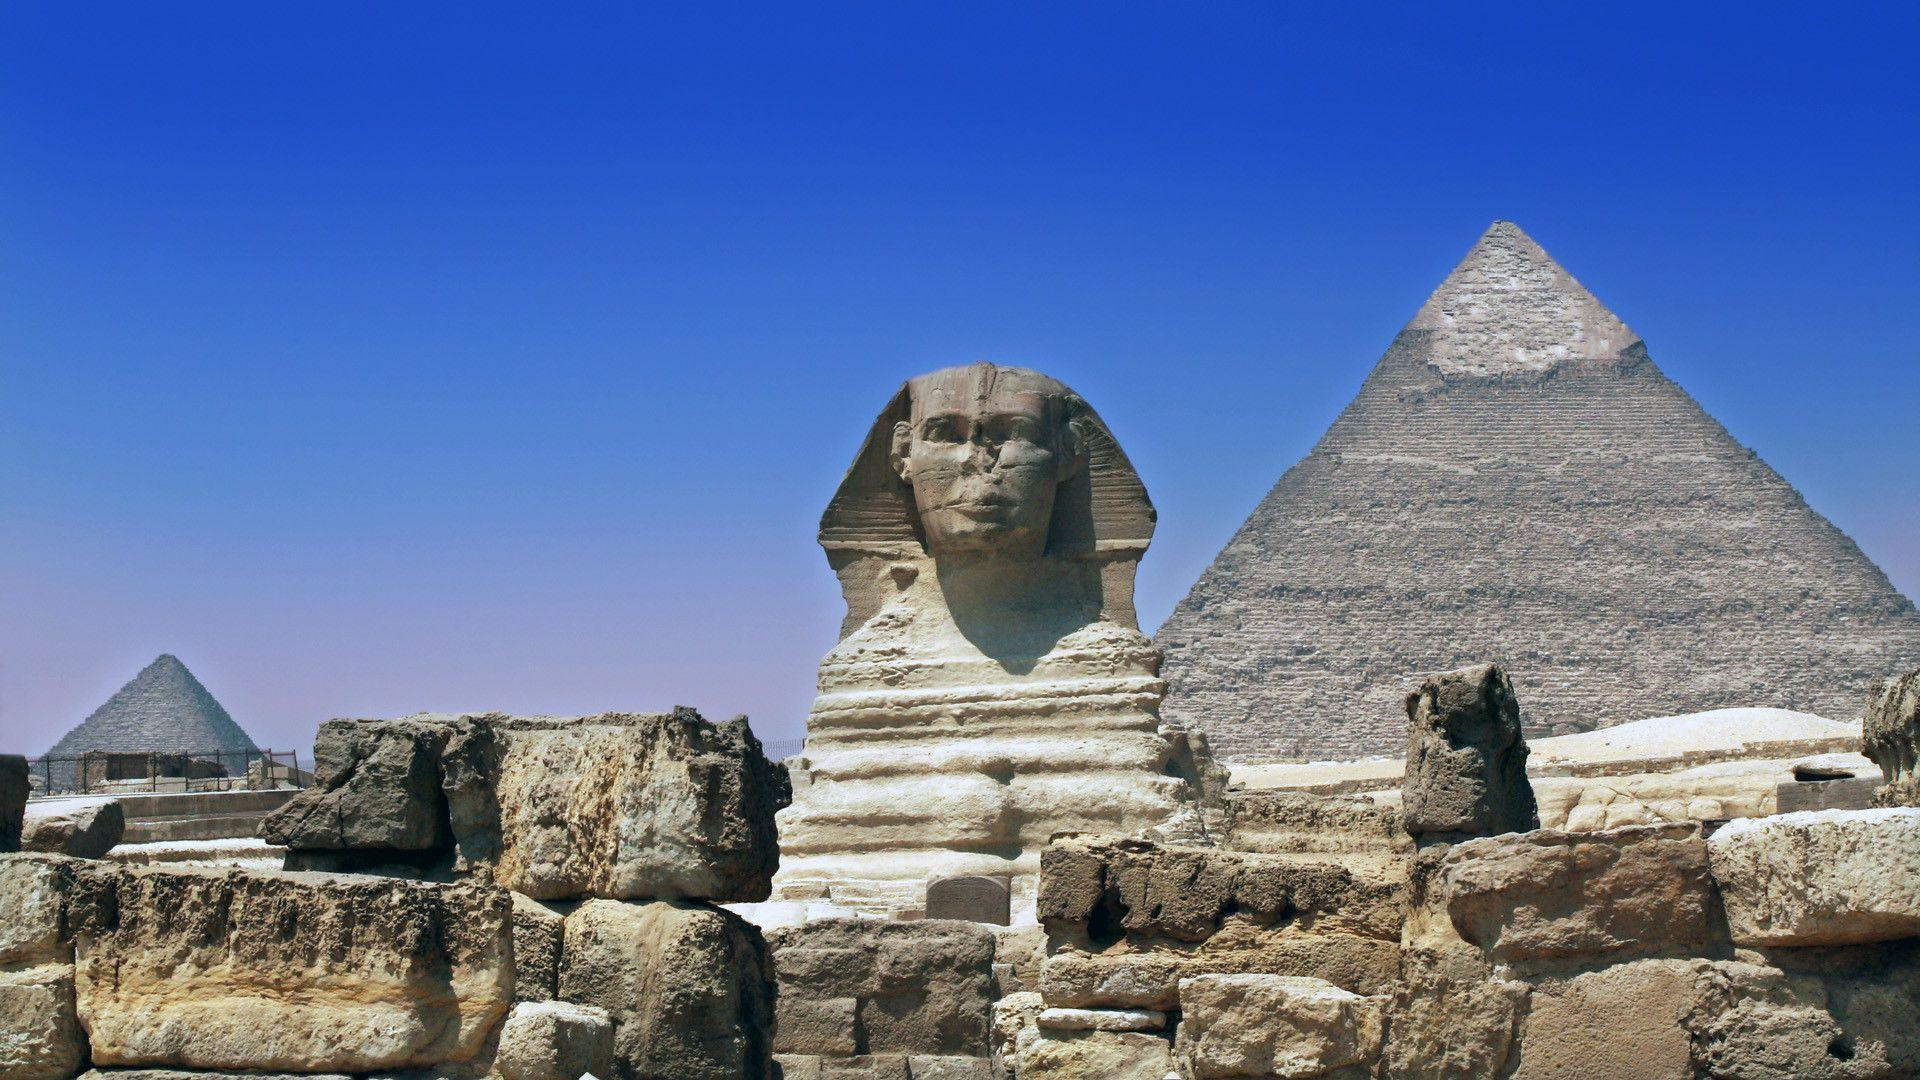 Cairo Sphinx Pyramids wallpapers